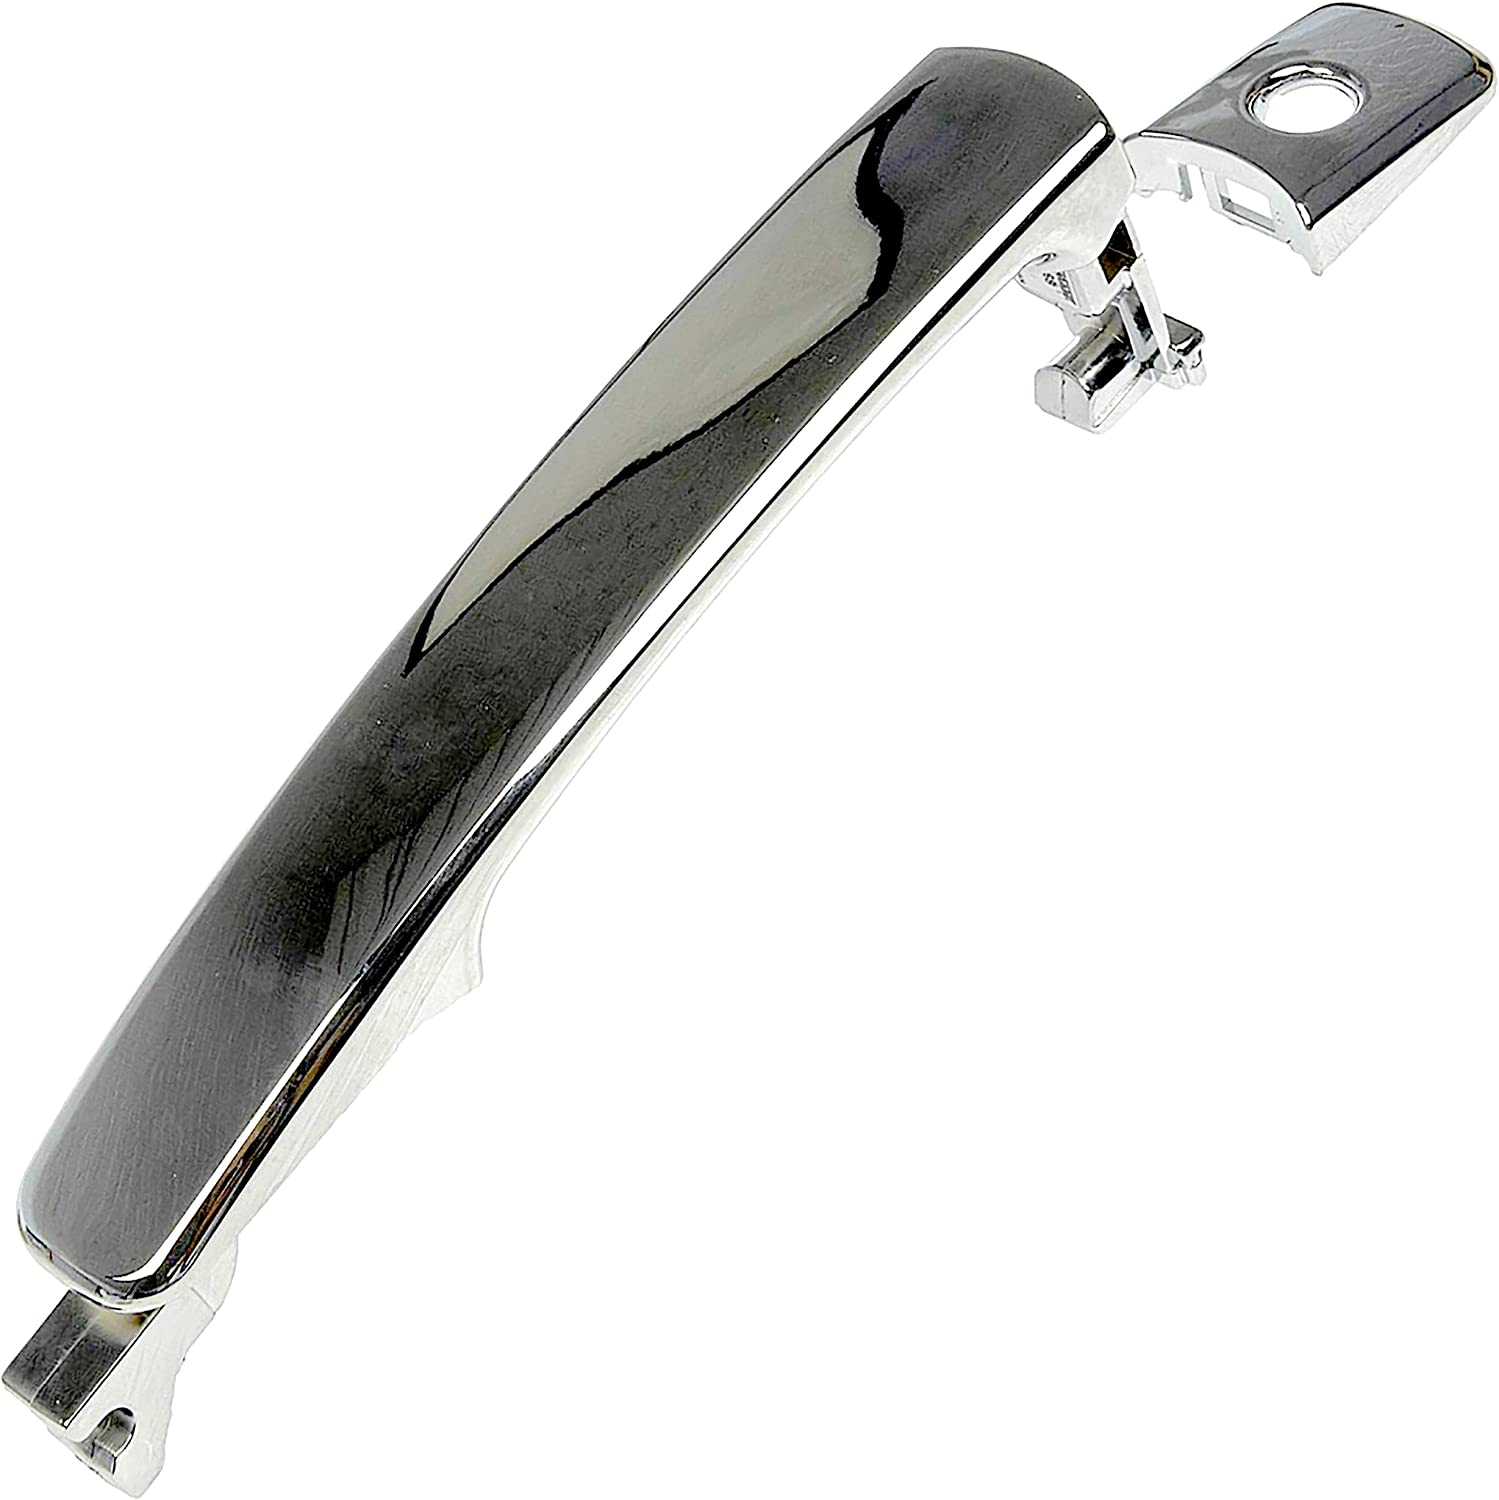 APDTY Luxury Safety and trust goods 92179 Exterior Door Handle Front 8064 Replaces Chrome Left